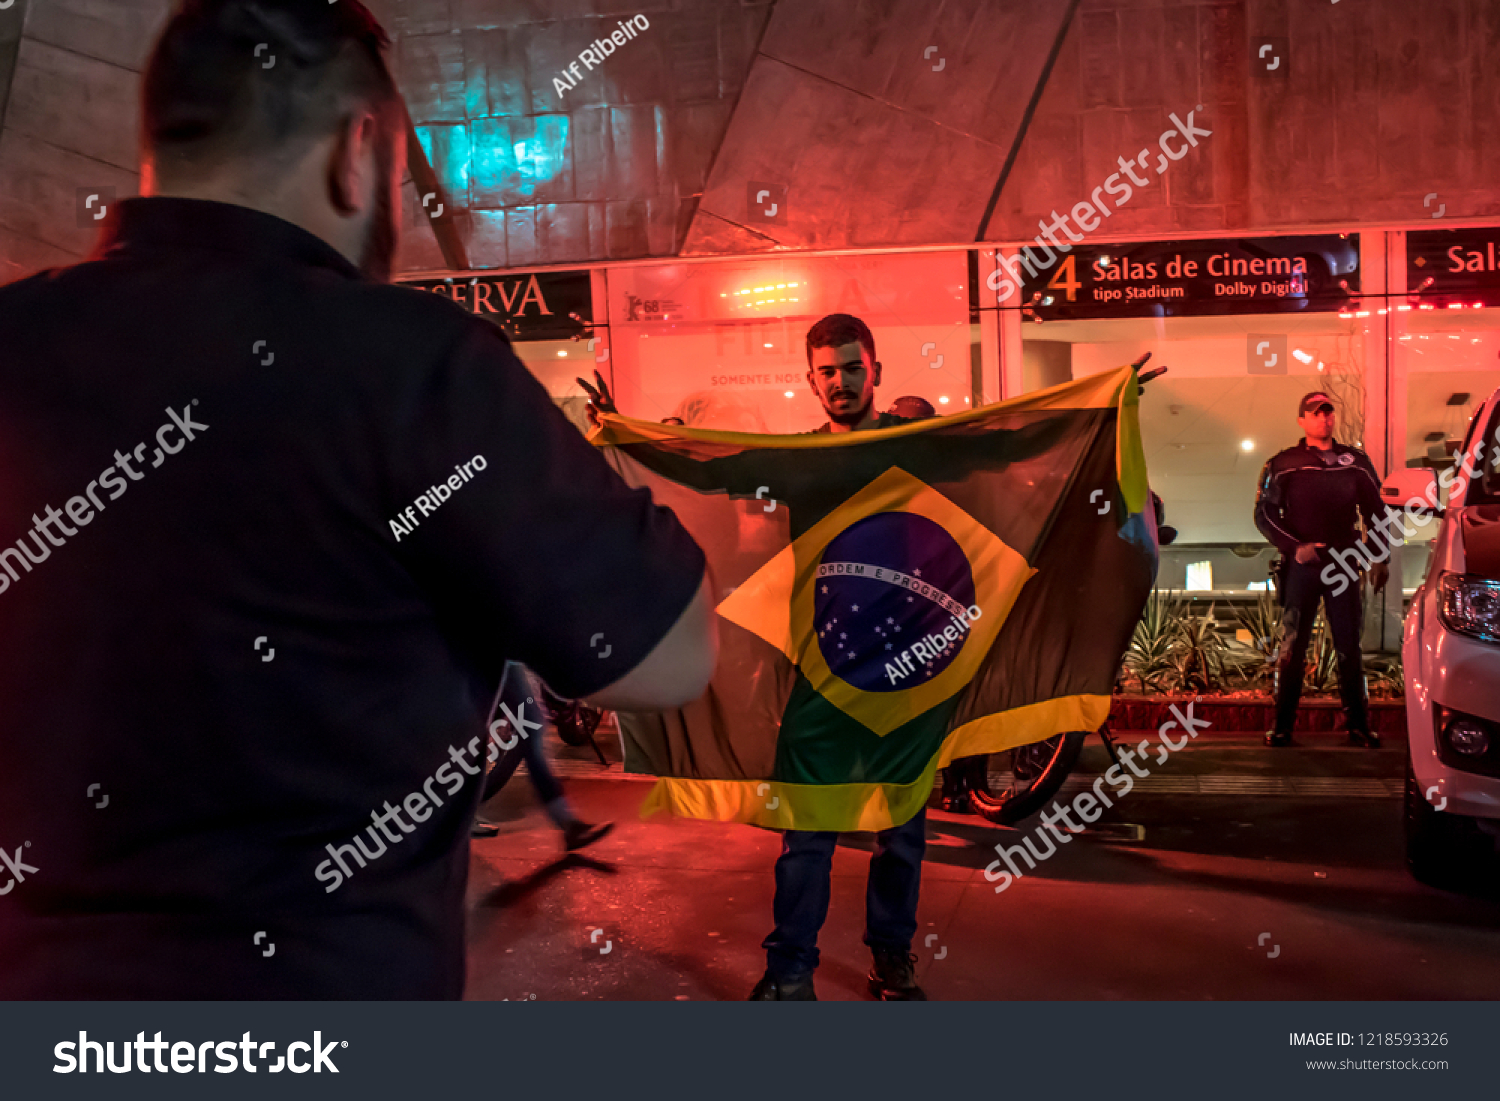 Paulo Brazil October 28 2018 Supporters Stock Photo (Edit Now ... cba5aeb19